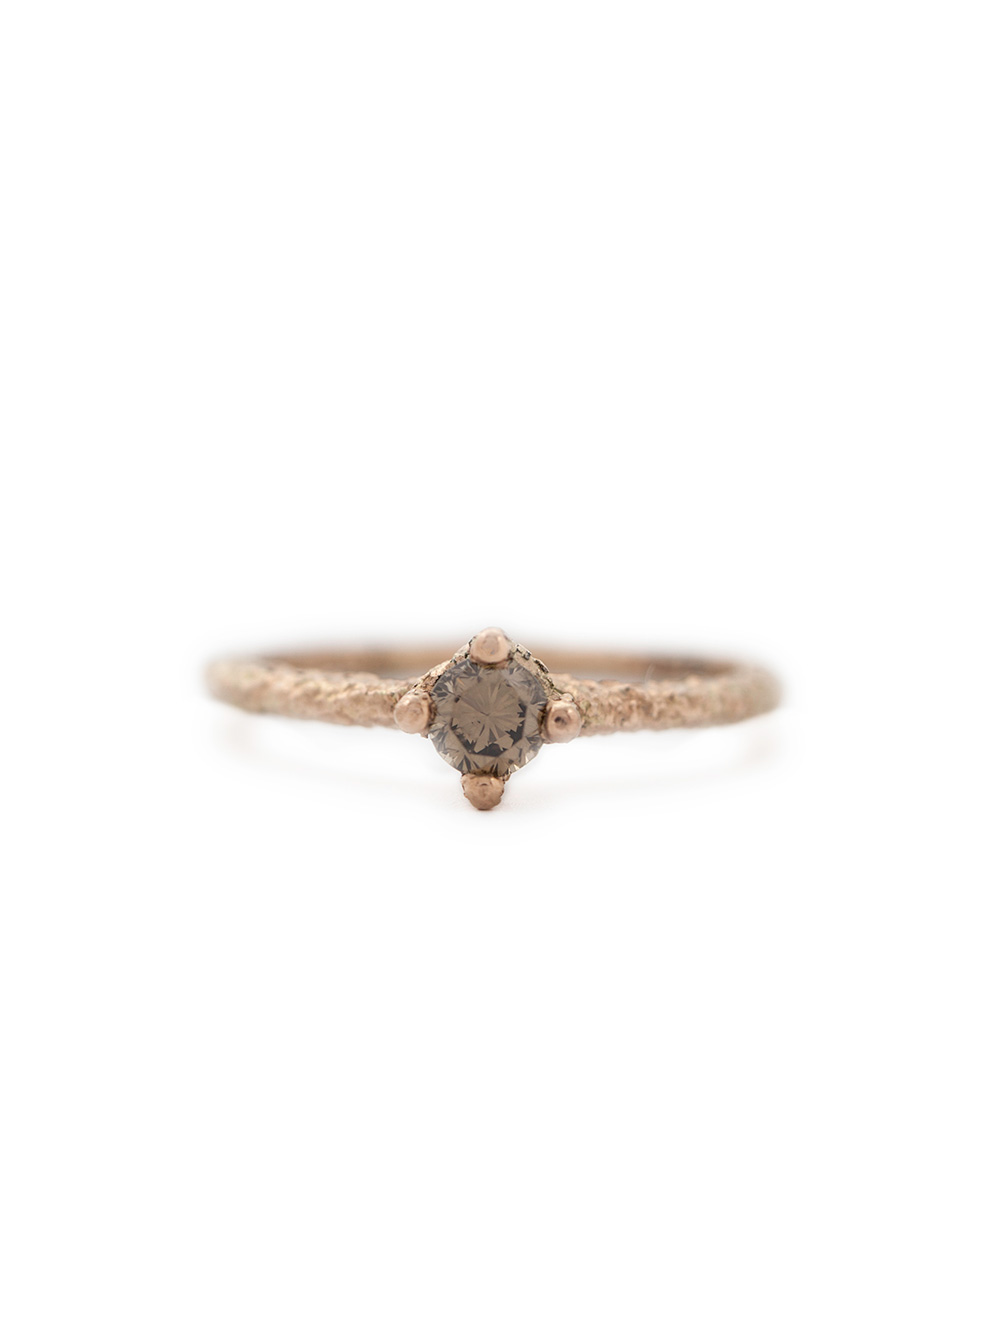 Cognac diamond ring in rose gold, £1840